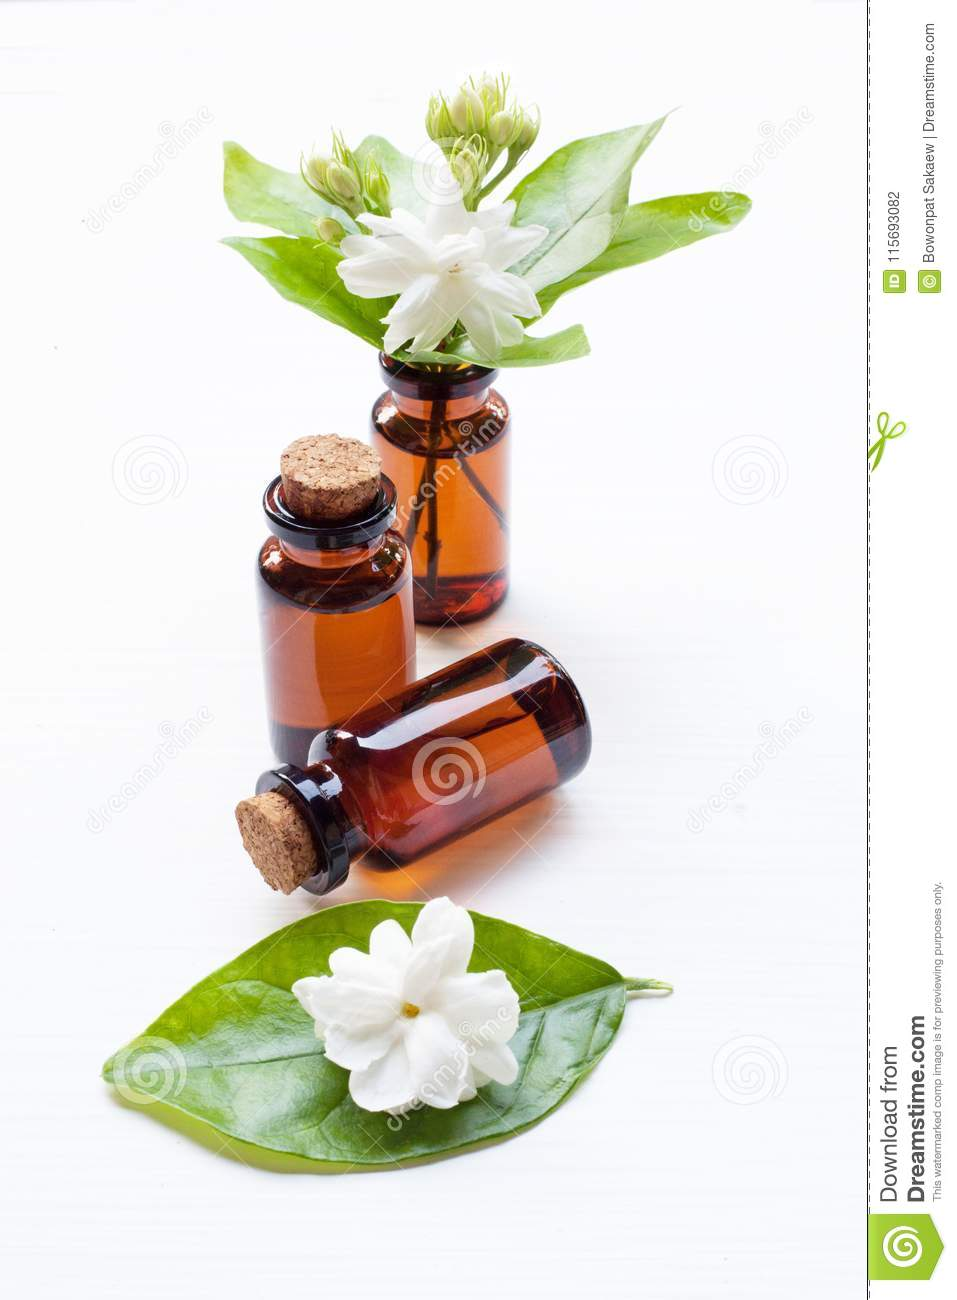 Essential Oil With Jasmine Flower Stock Photo Image Of Buddhism